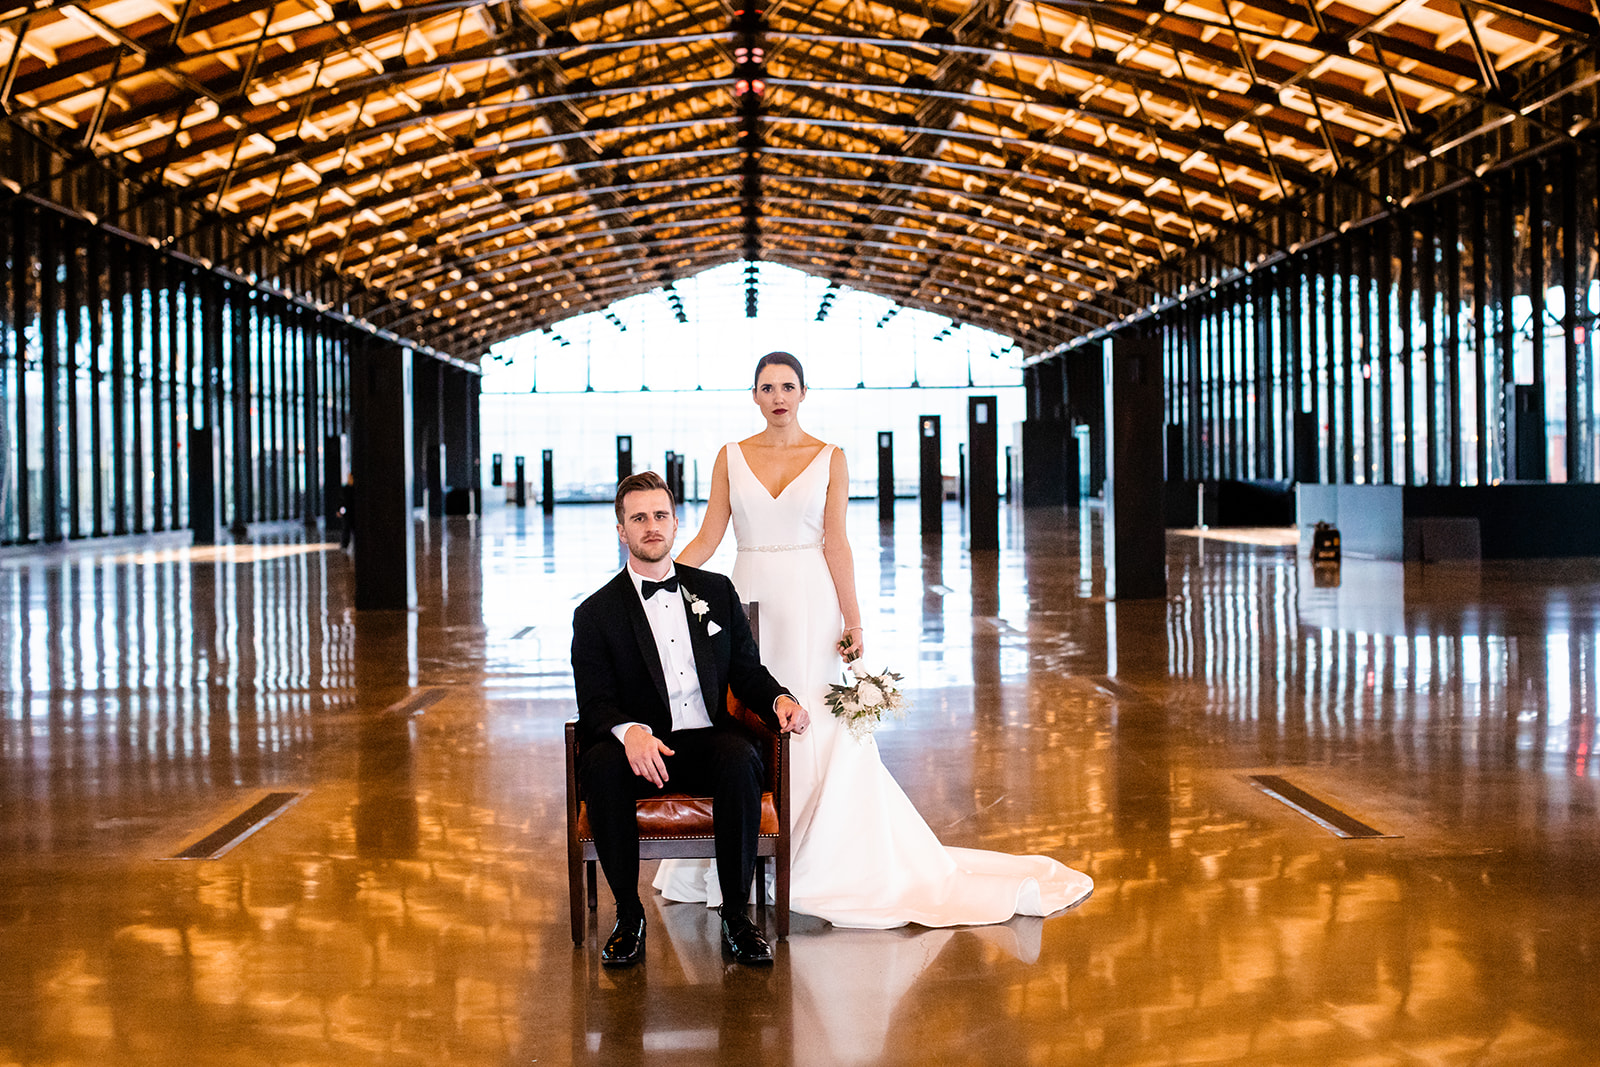 Christina  Colins Main Street Station Wedding - Image Property of www.j-dphoto.com